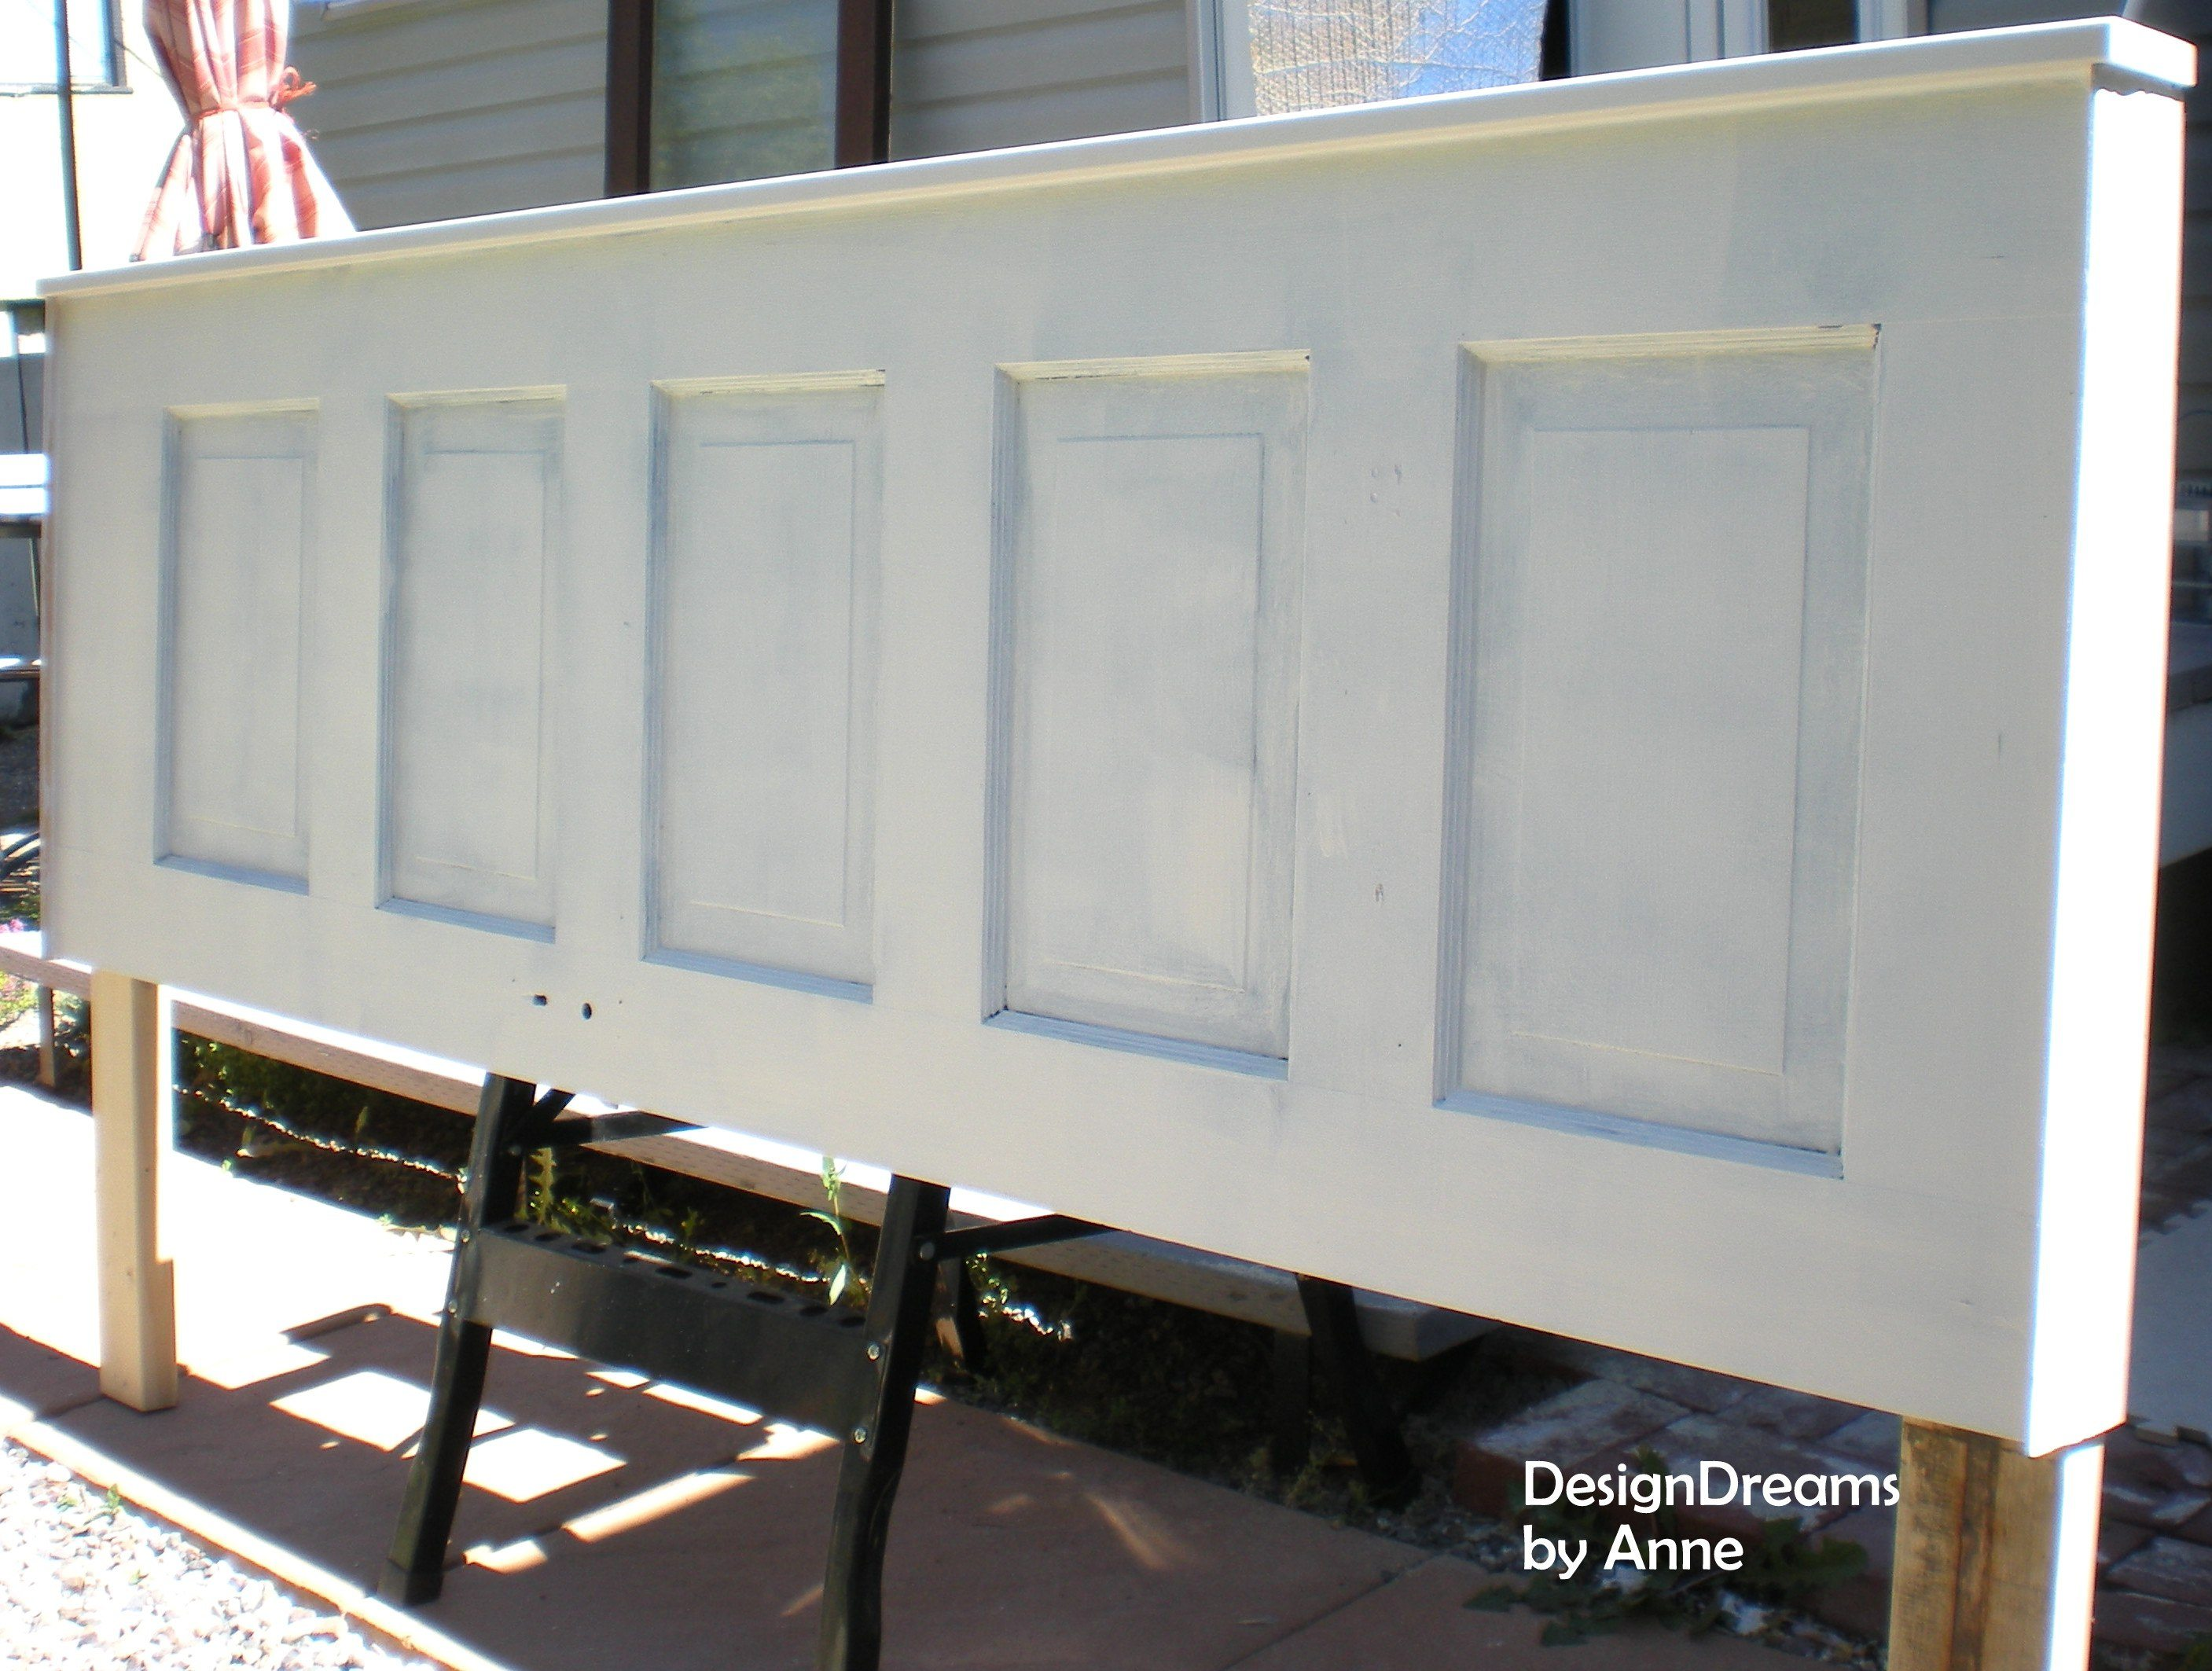 How to Build a Headboard from an Old Door